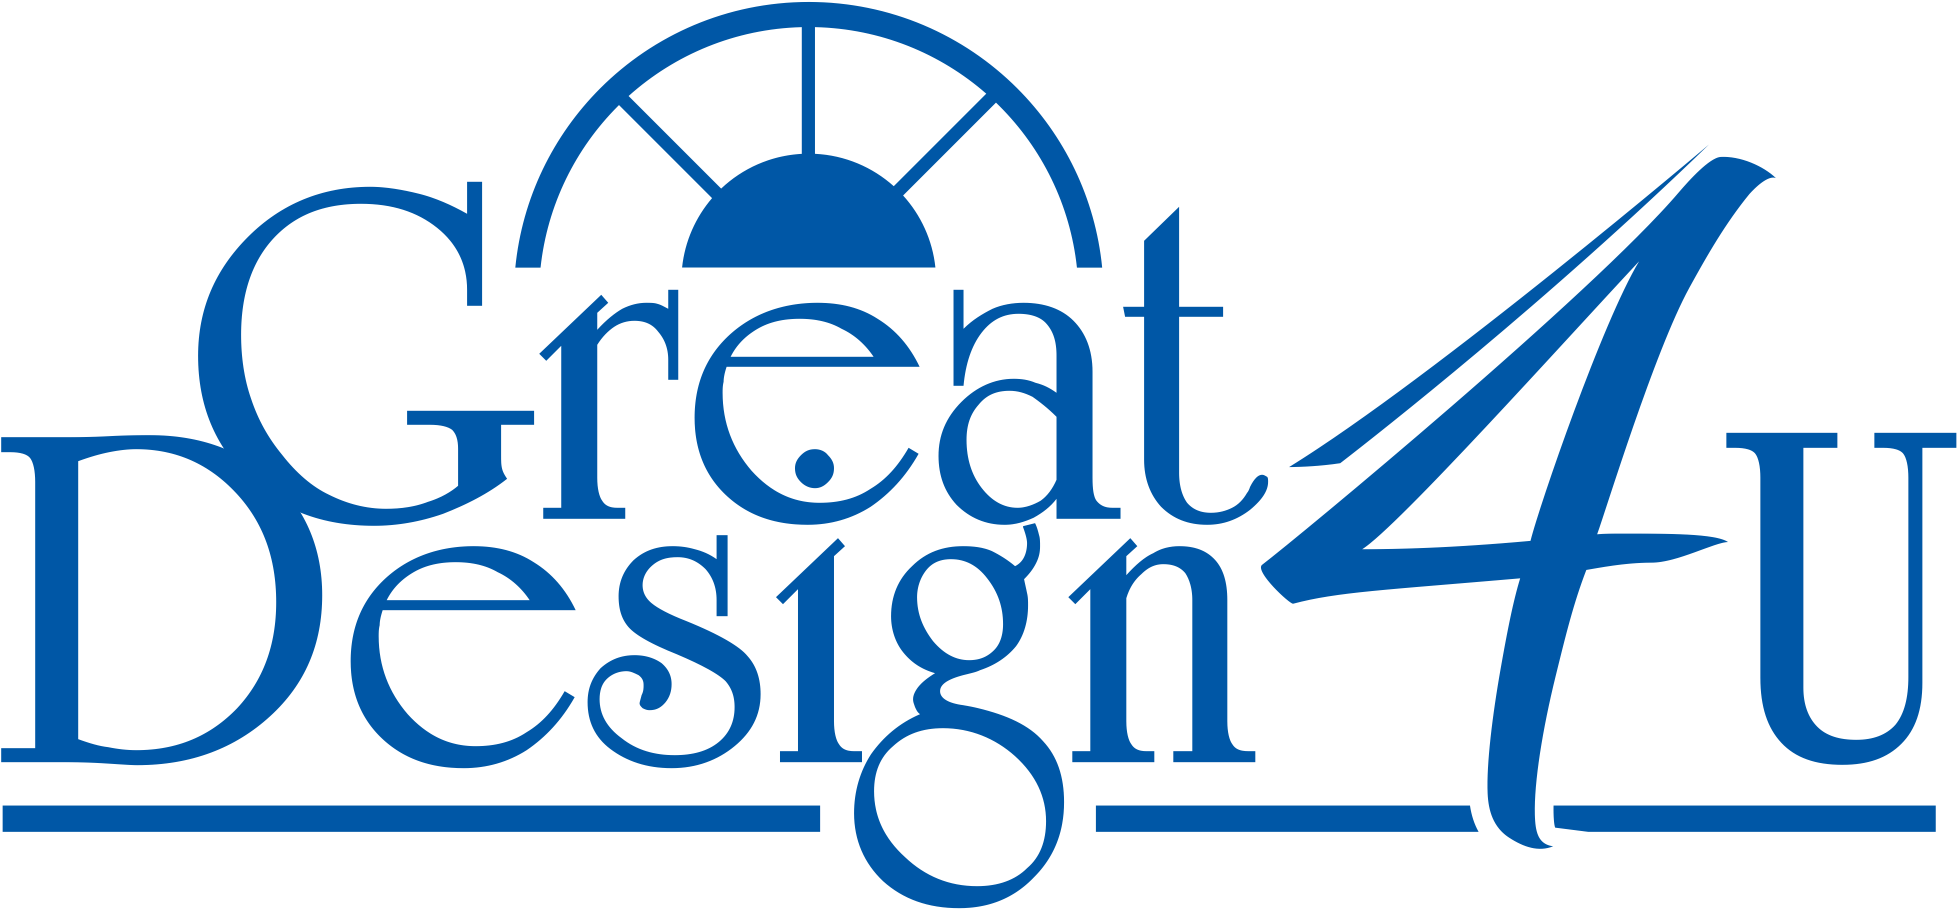 Great Design 4 U.